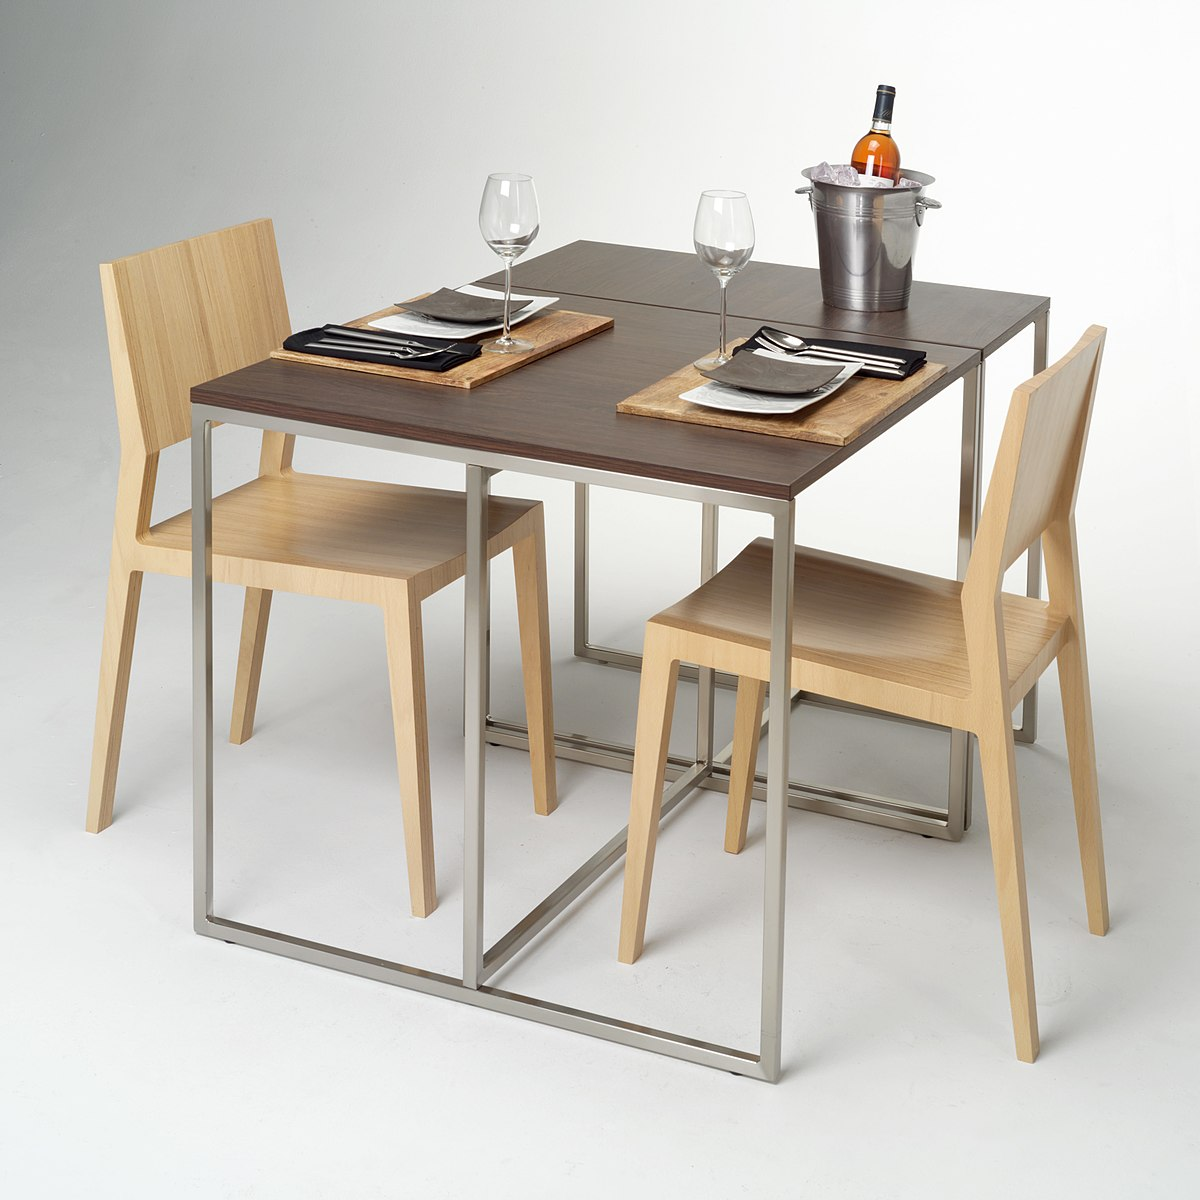 Furniture wikipedia for Furniture dining table